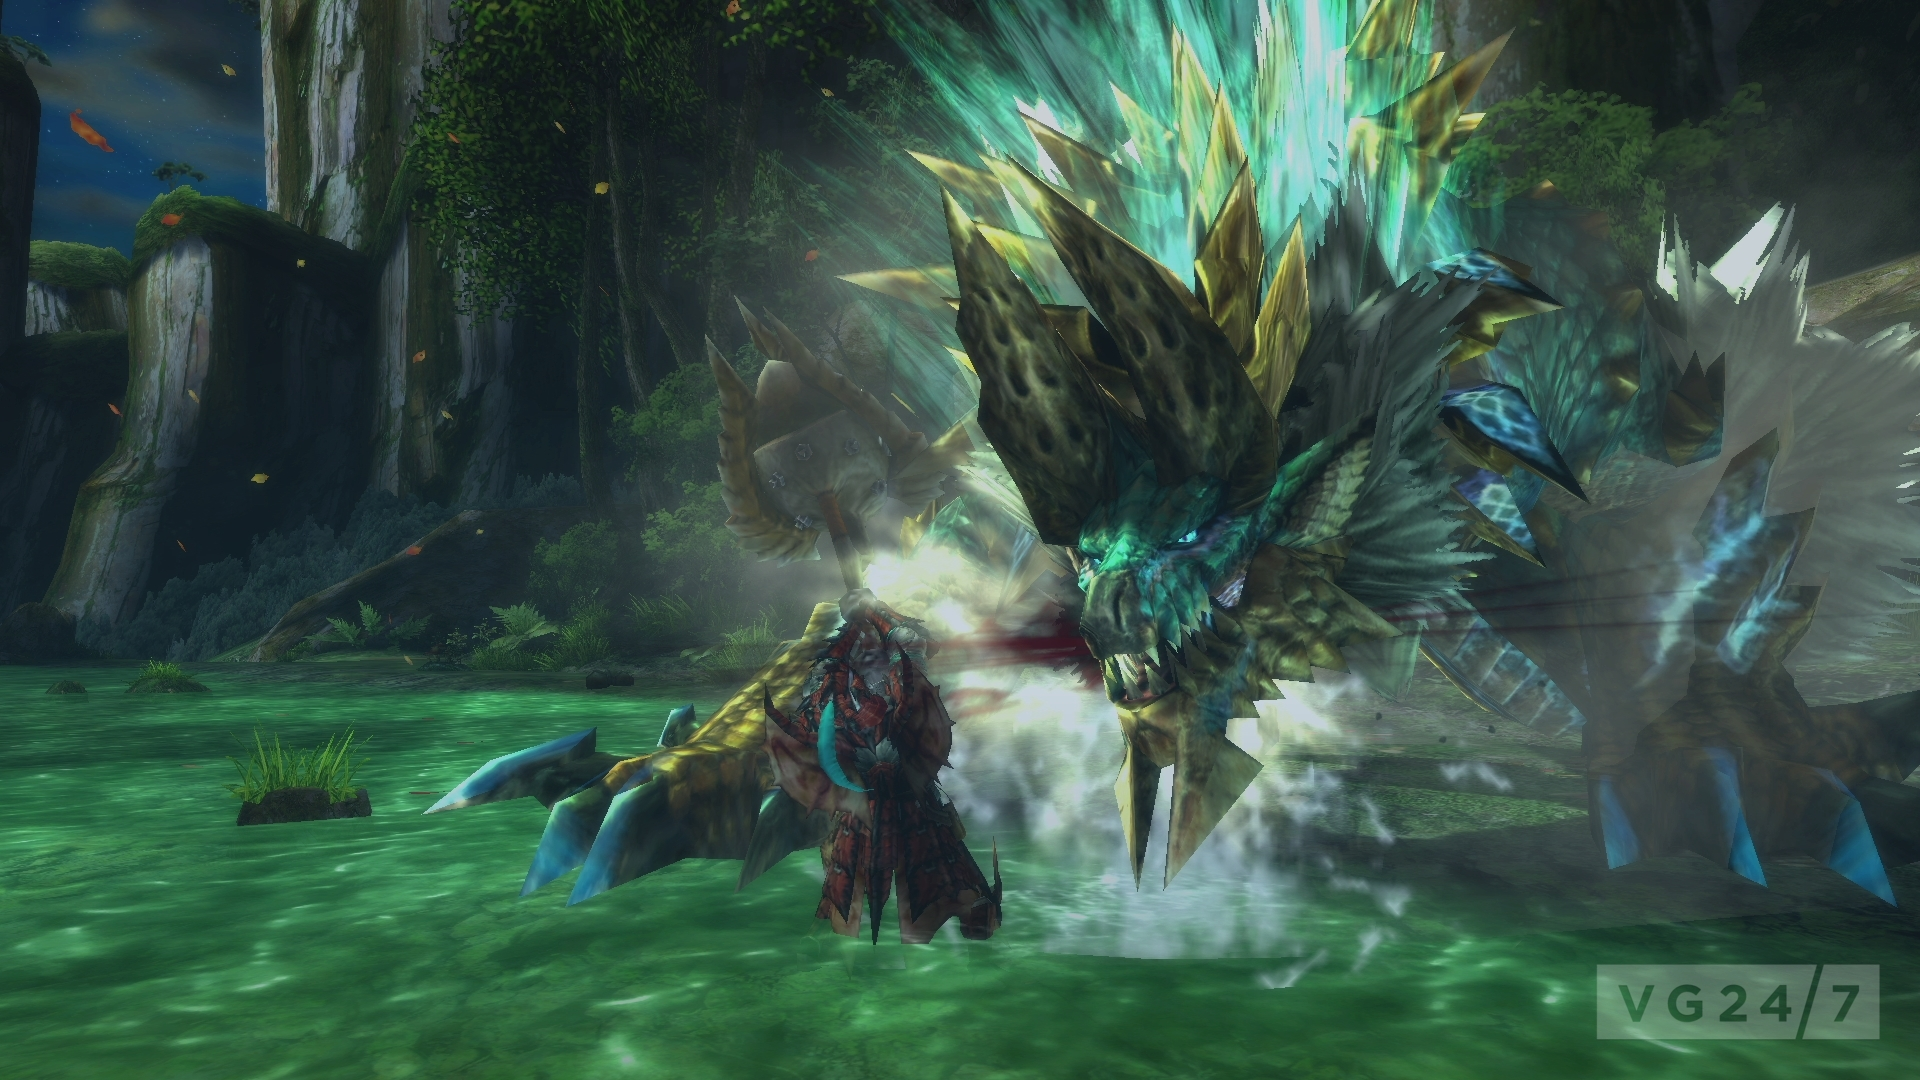 Monster Hunter 3 Ultimate intros continue with Zinogre VG247 1920x1080